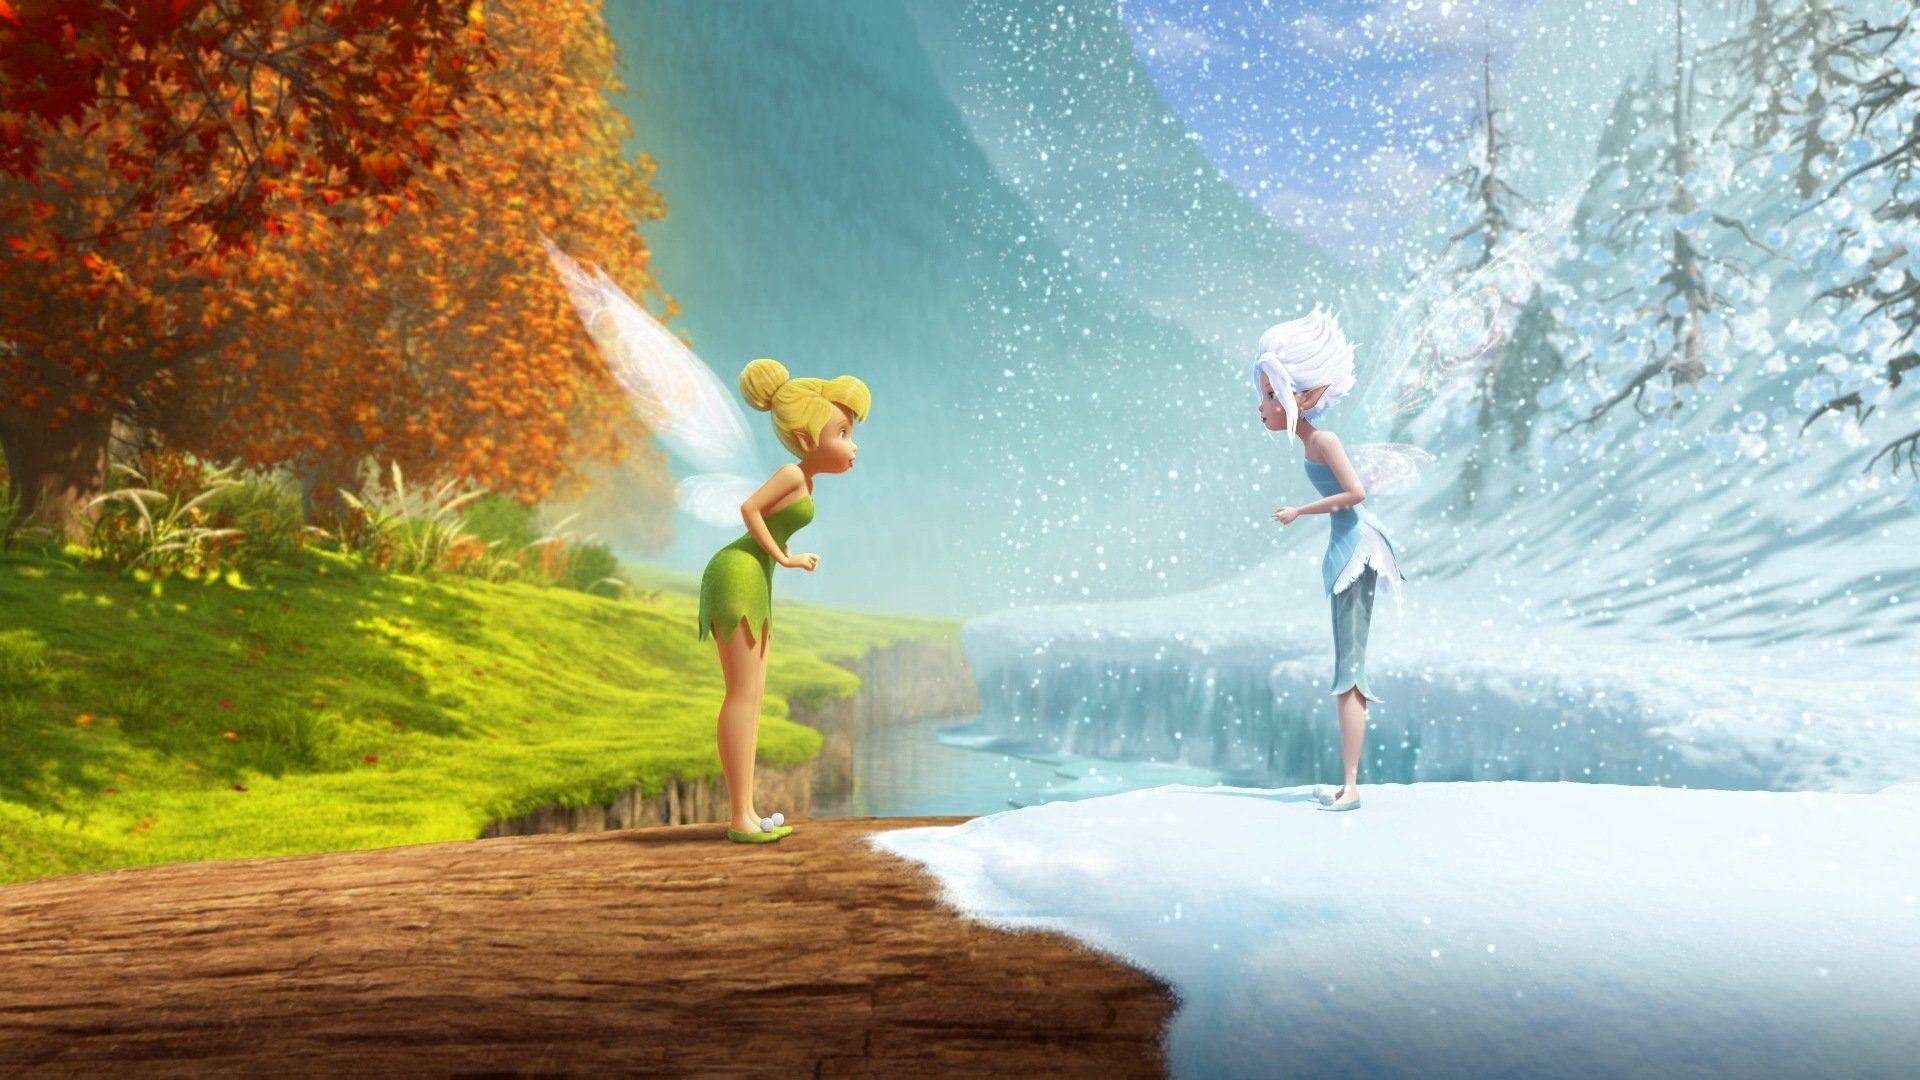 Secret Of The Wings Tinker Bell Wallpapers ID804016